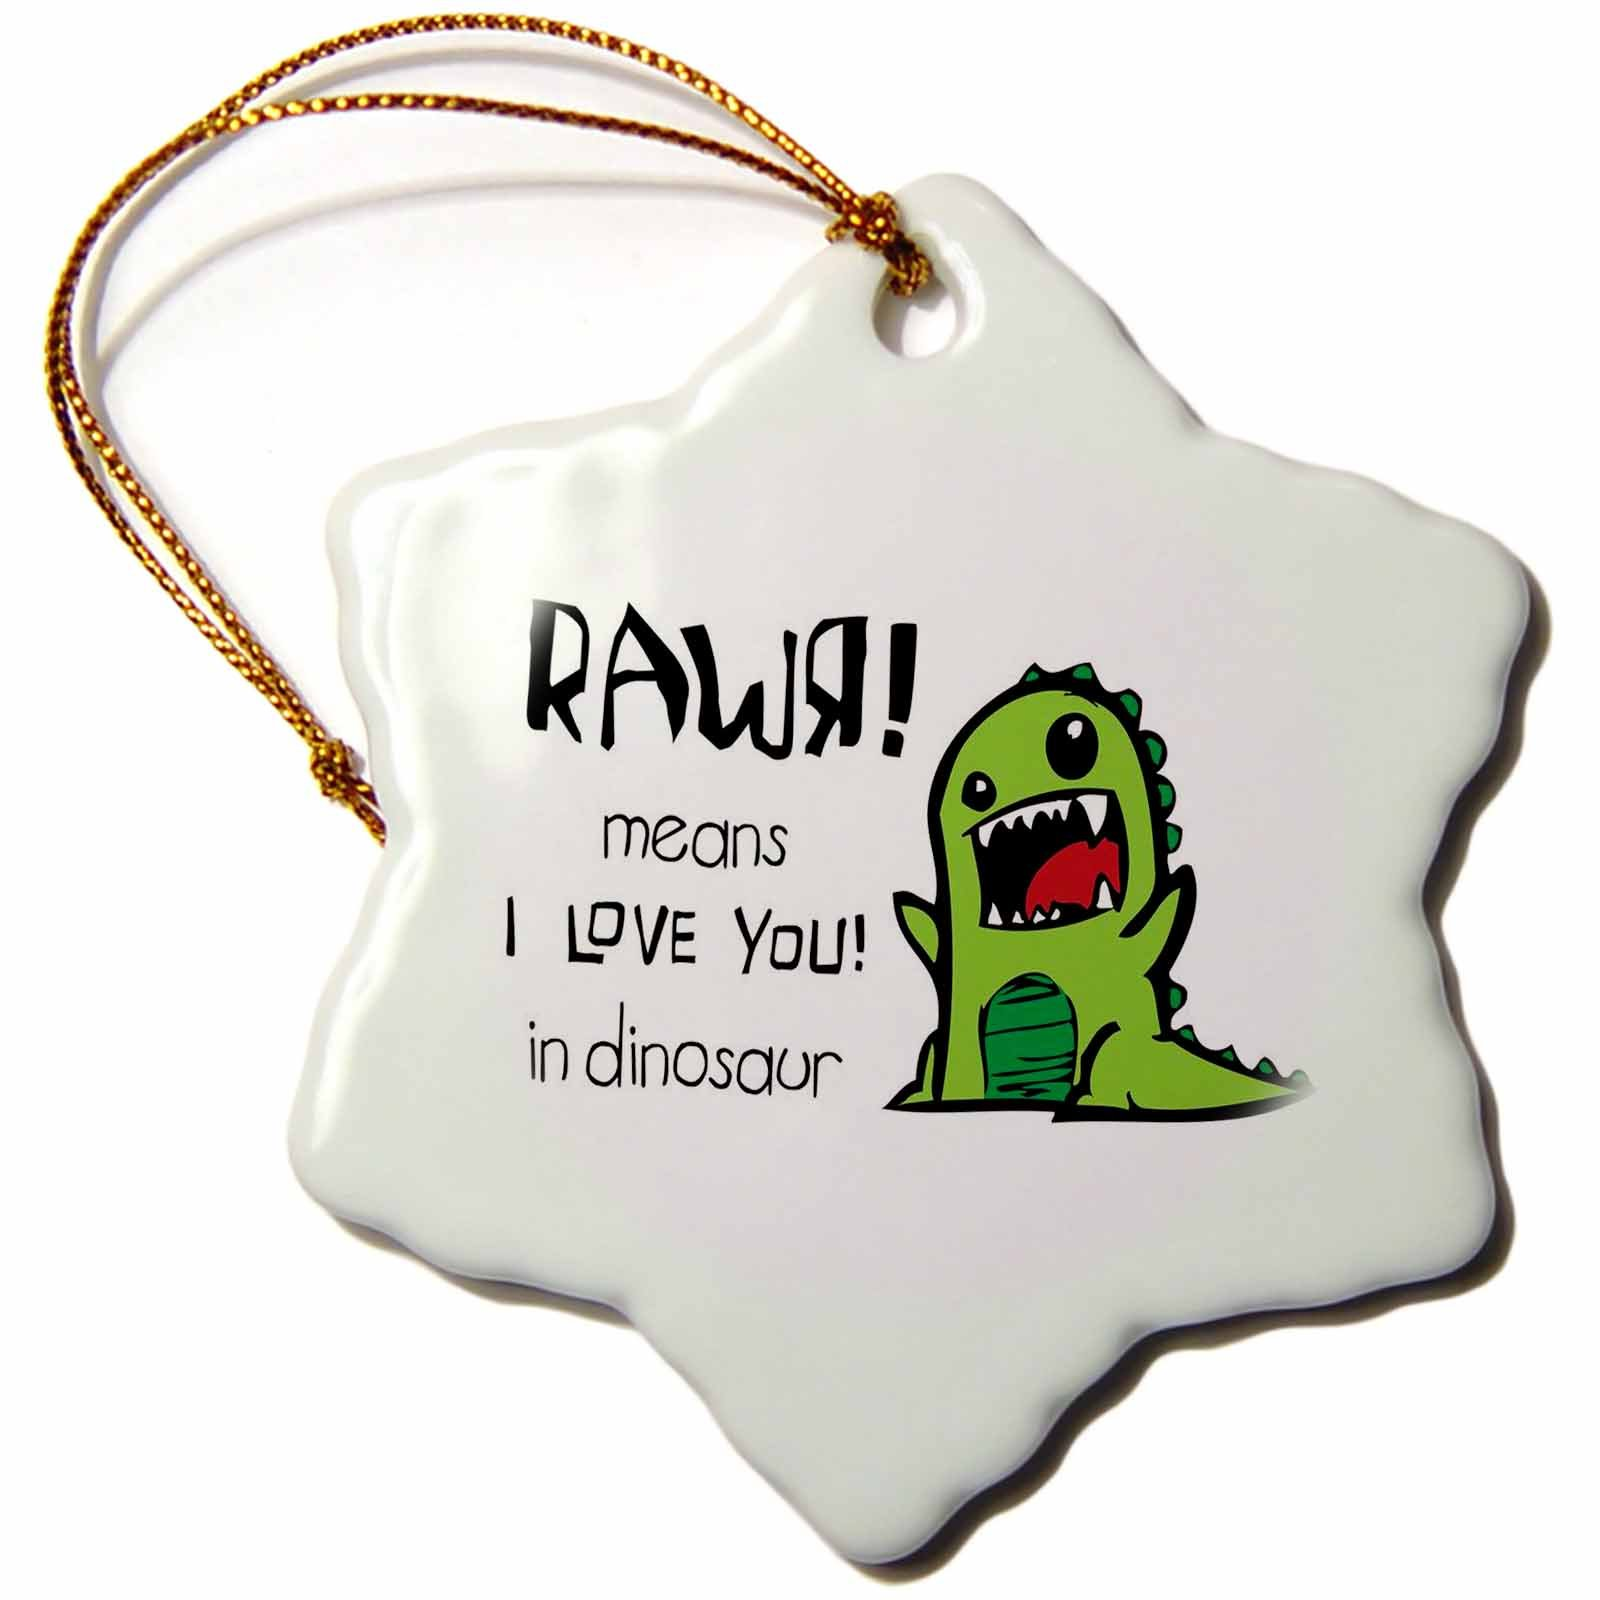 3dRose LLC orn_157446_1 Porcelain Snowflake Ornament, 3-Inch, Rawr Means I Love You in Dinosaur Cute Dinosaur